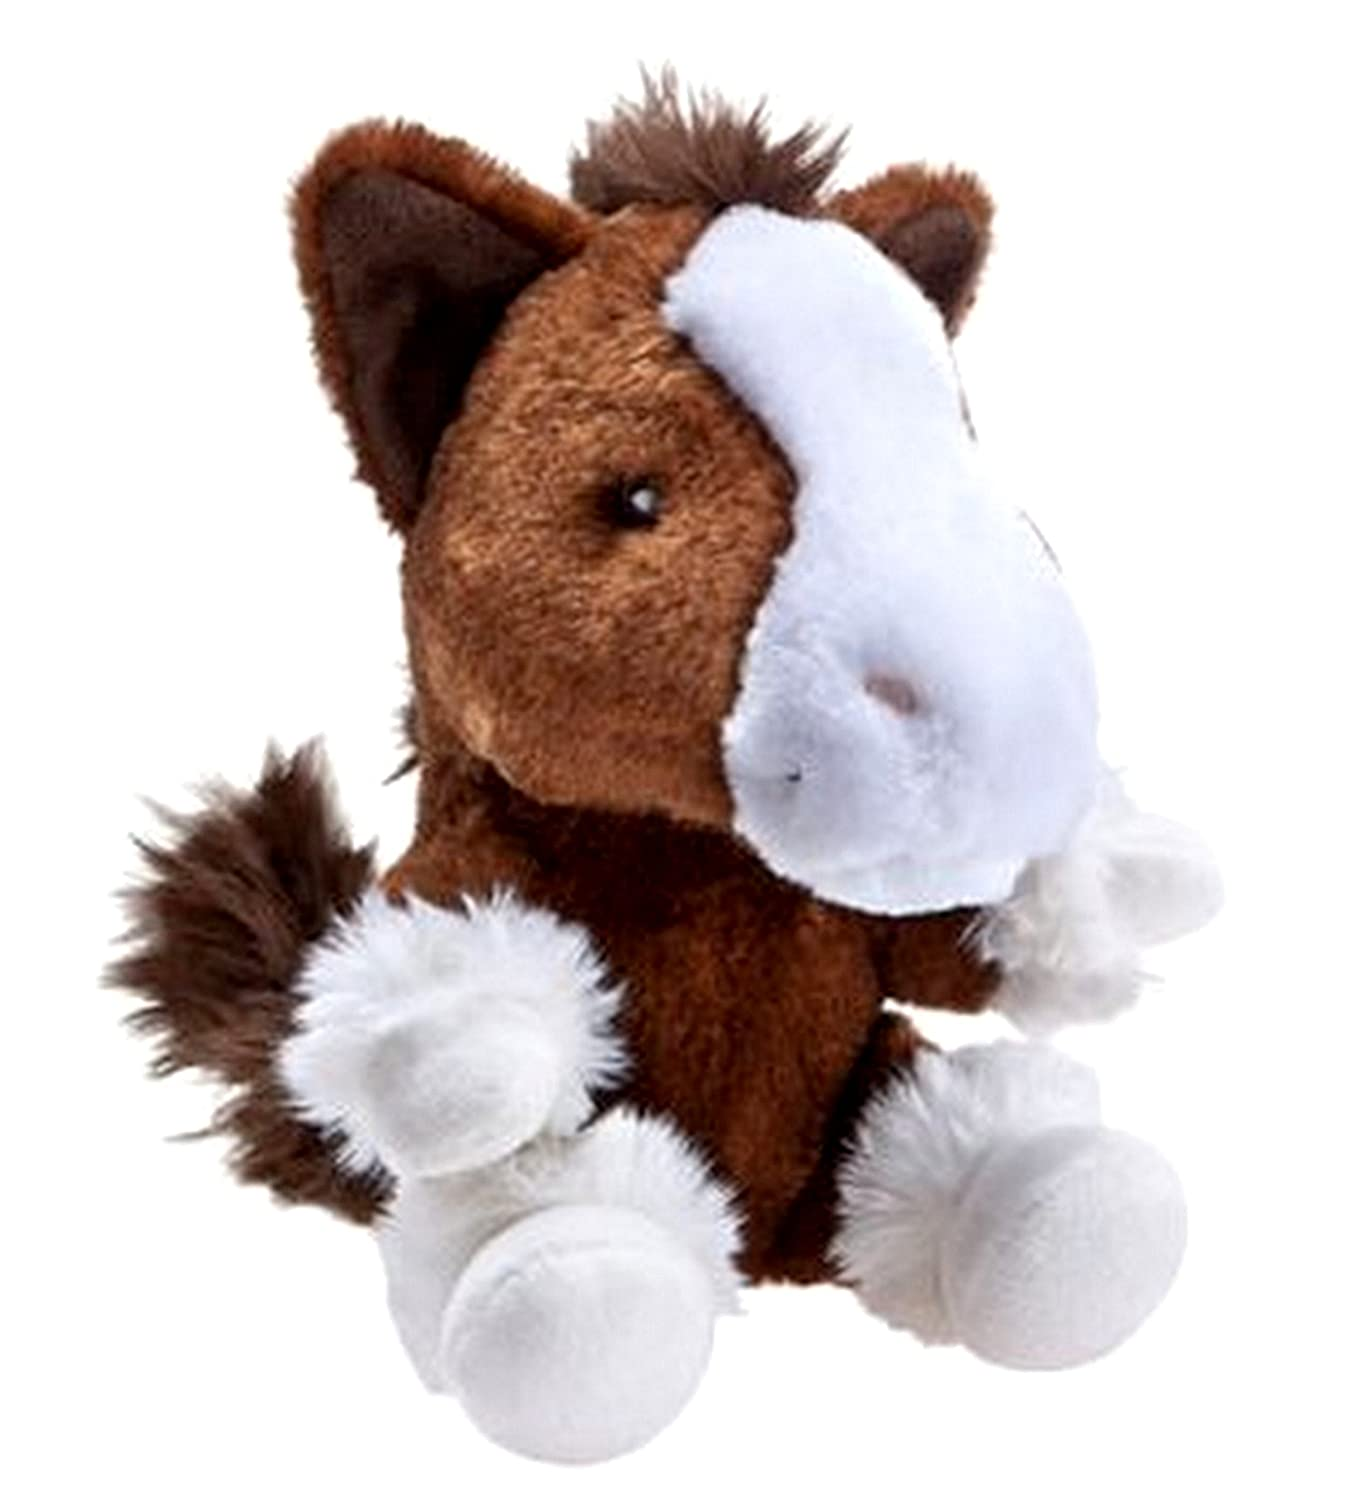 Amazon Build a Bear Workshop SF Smallfrys Clydesdale Pony